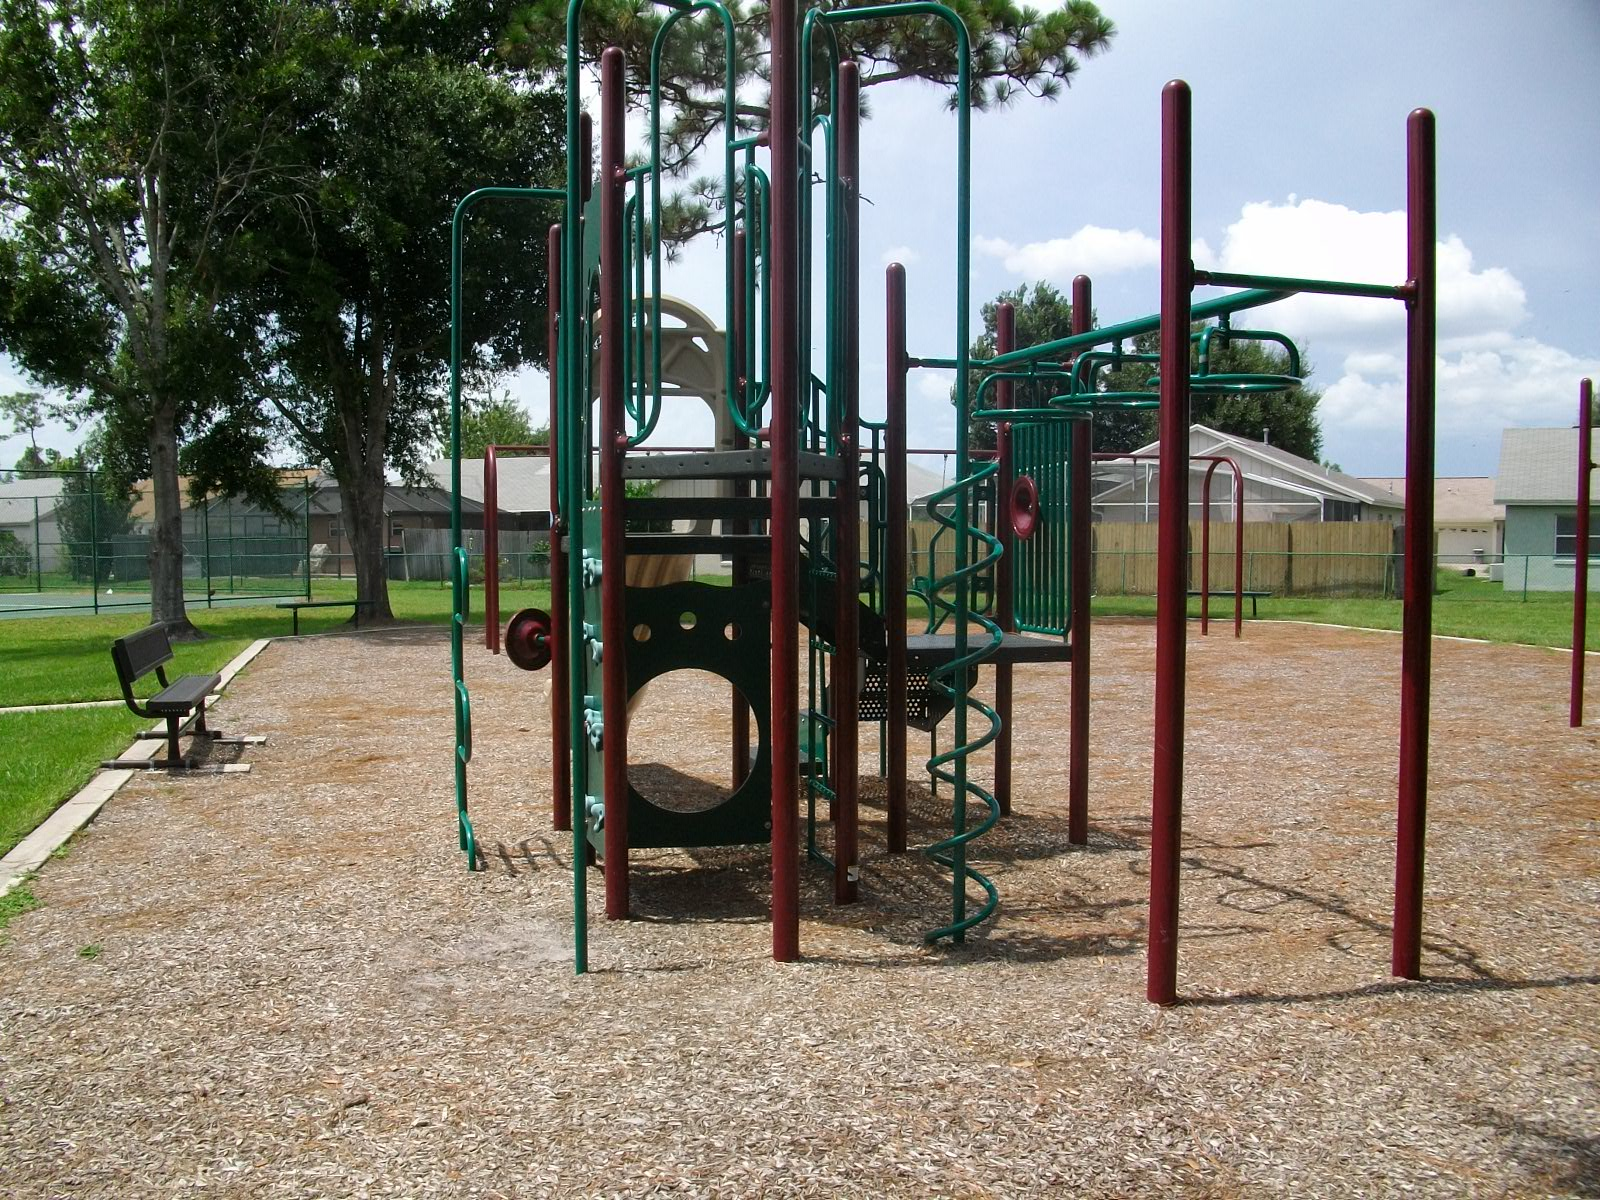 Indian Point Kissimmee Children's Play Area